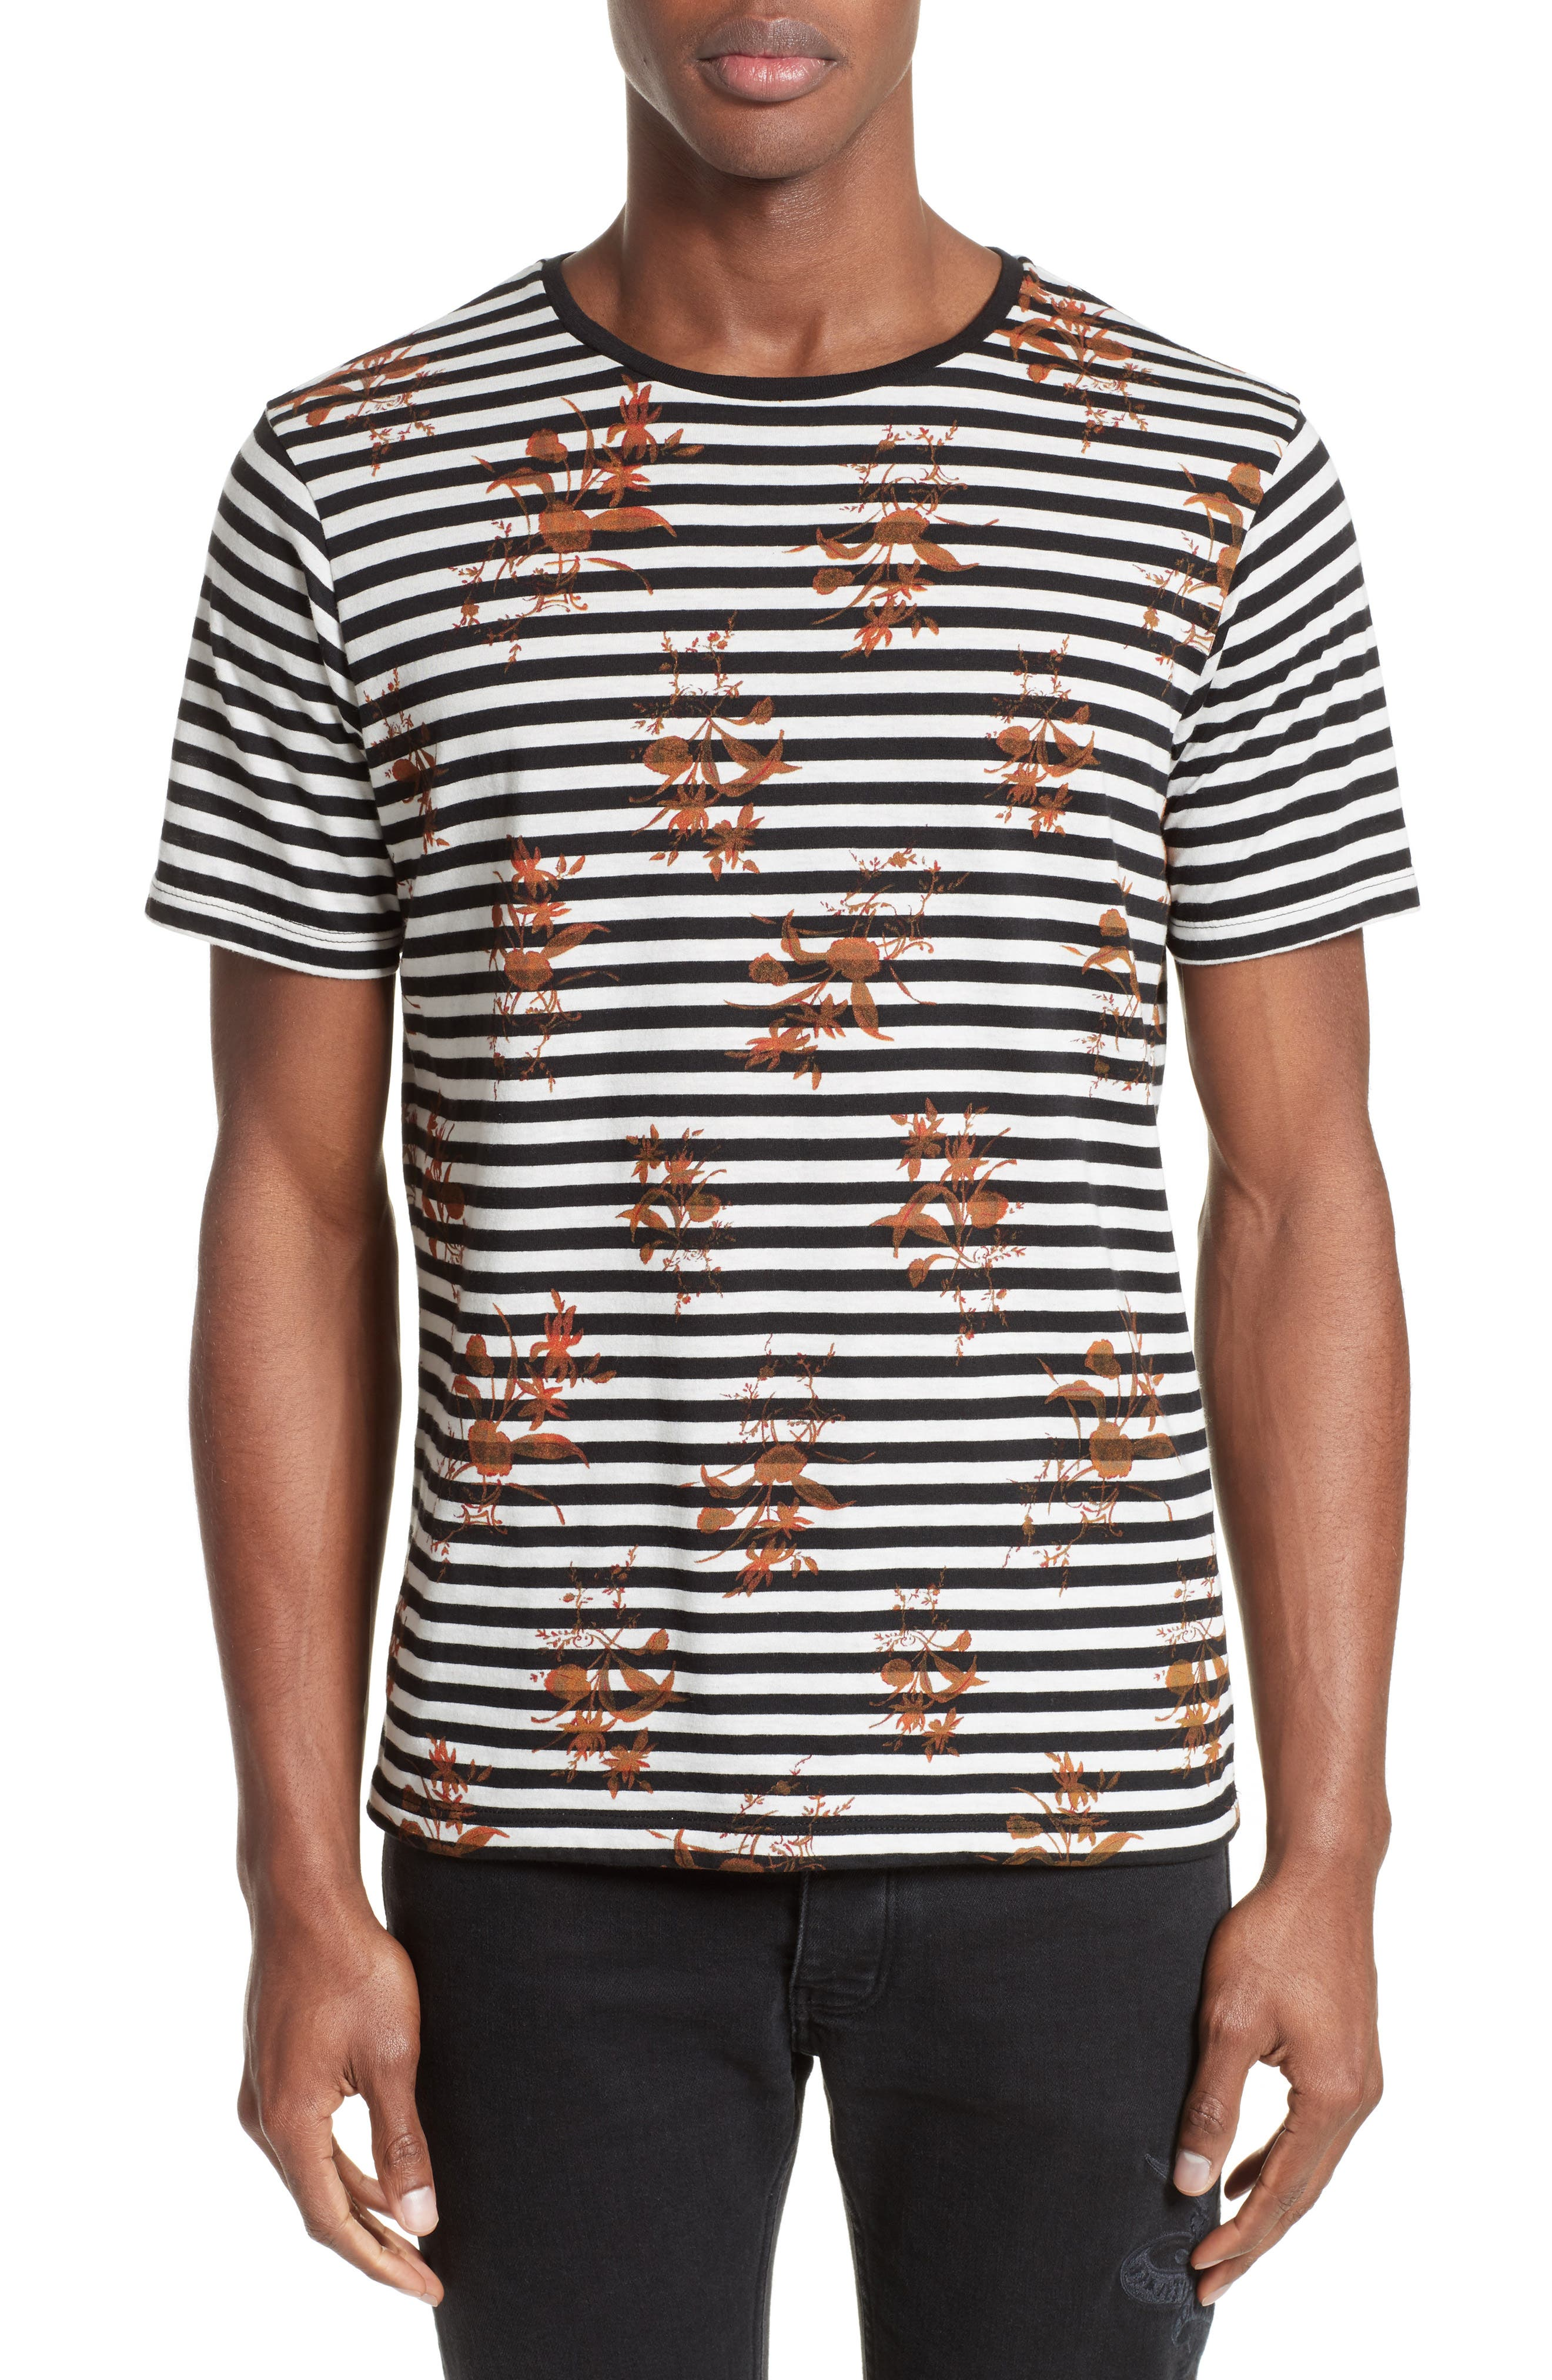 The Kooples Flower Print Stripe Ringer T-Shirt